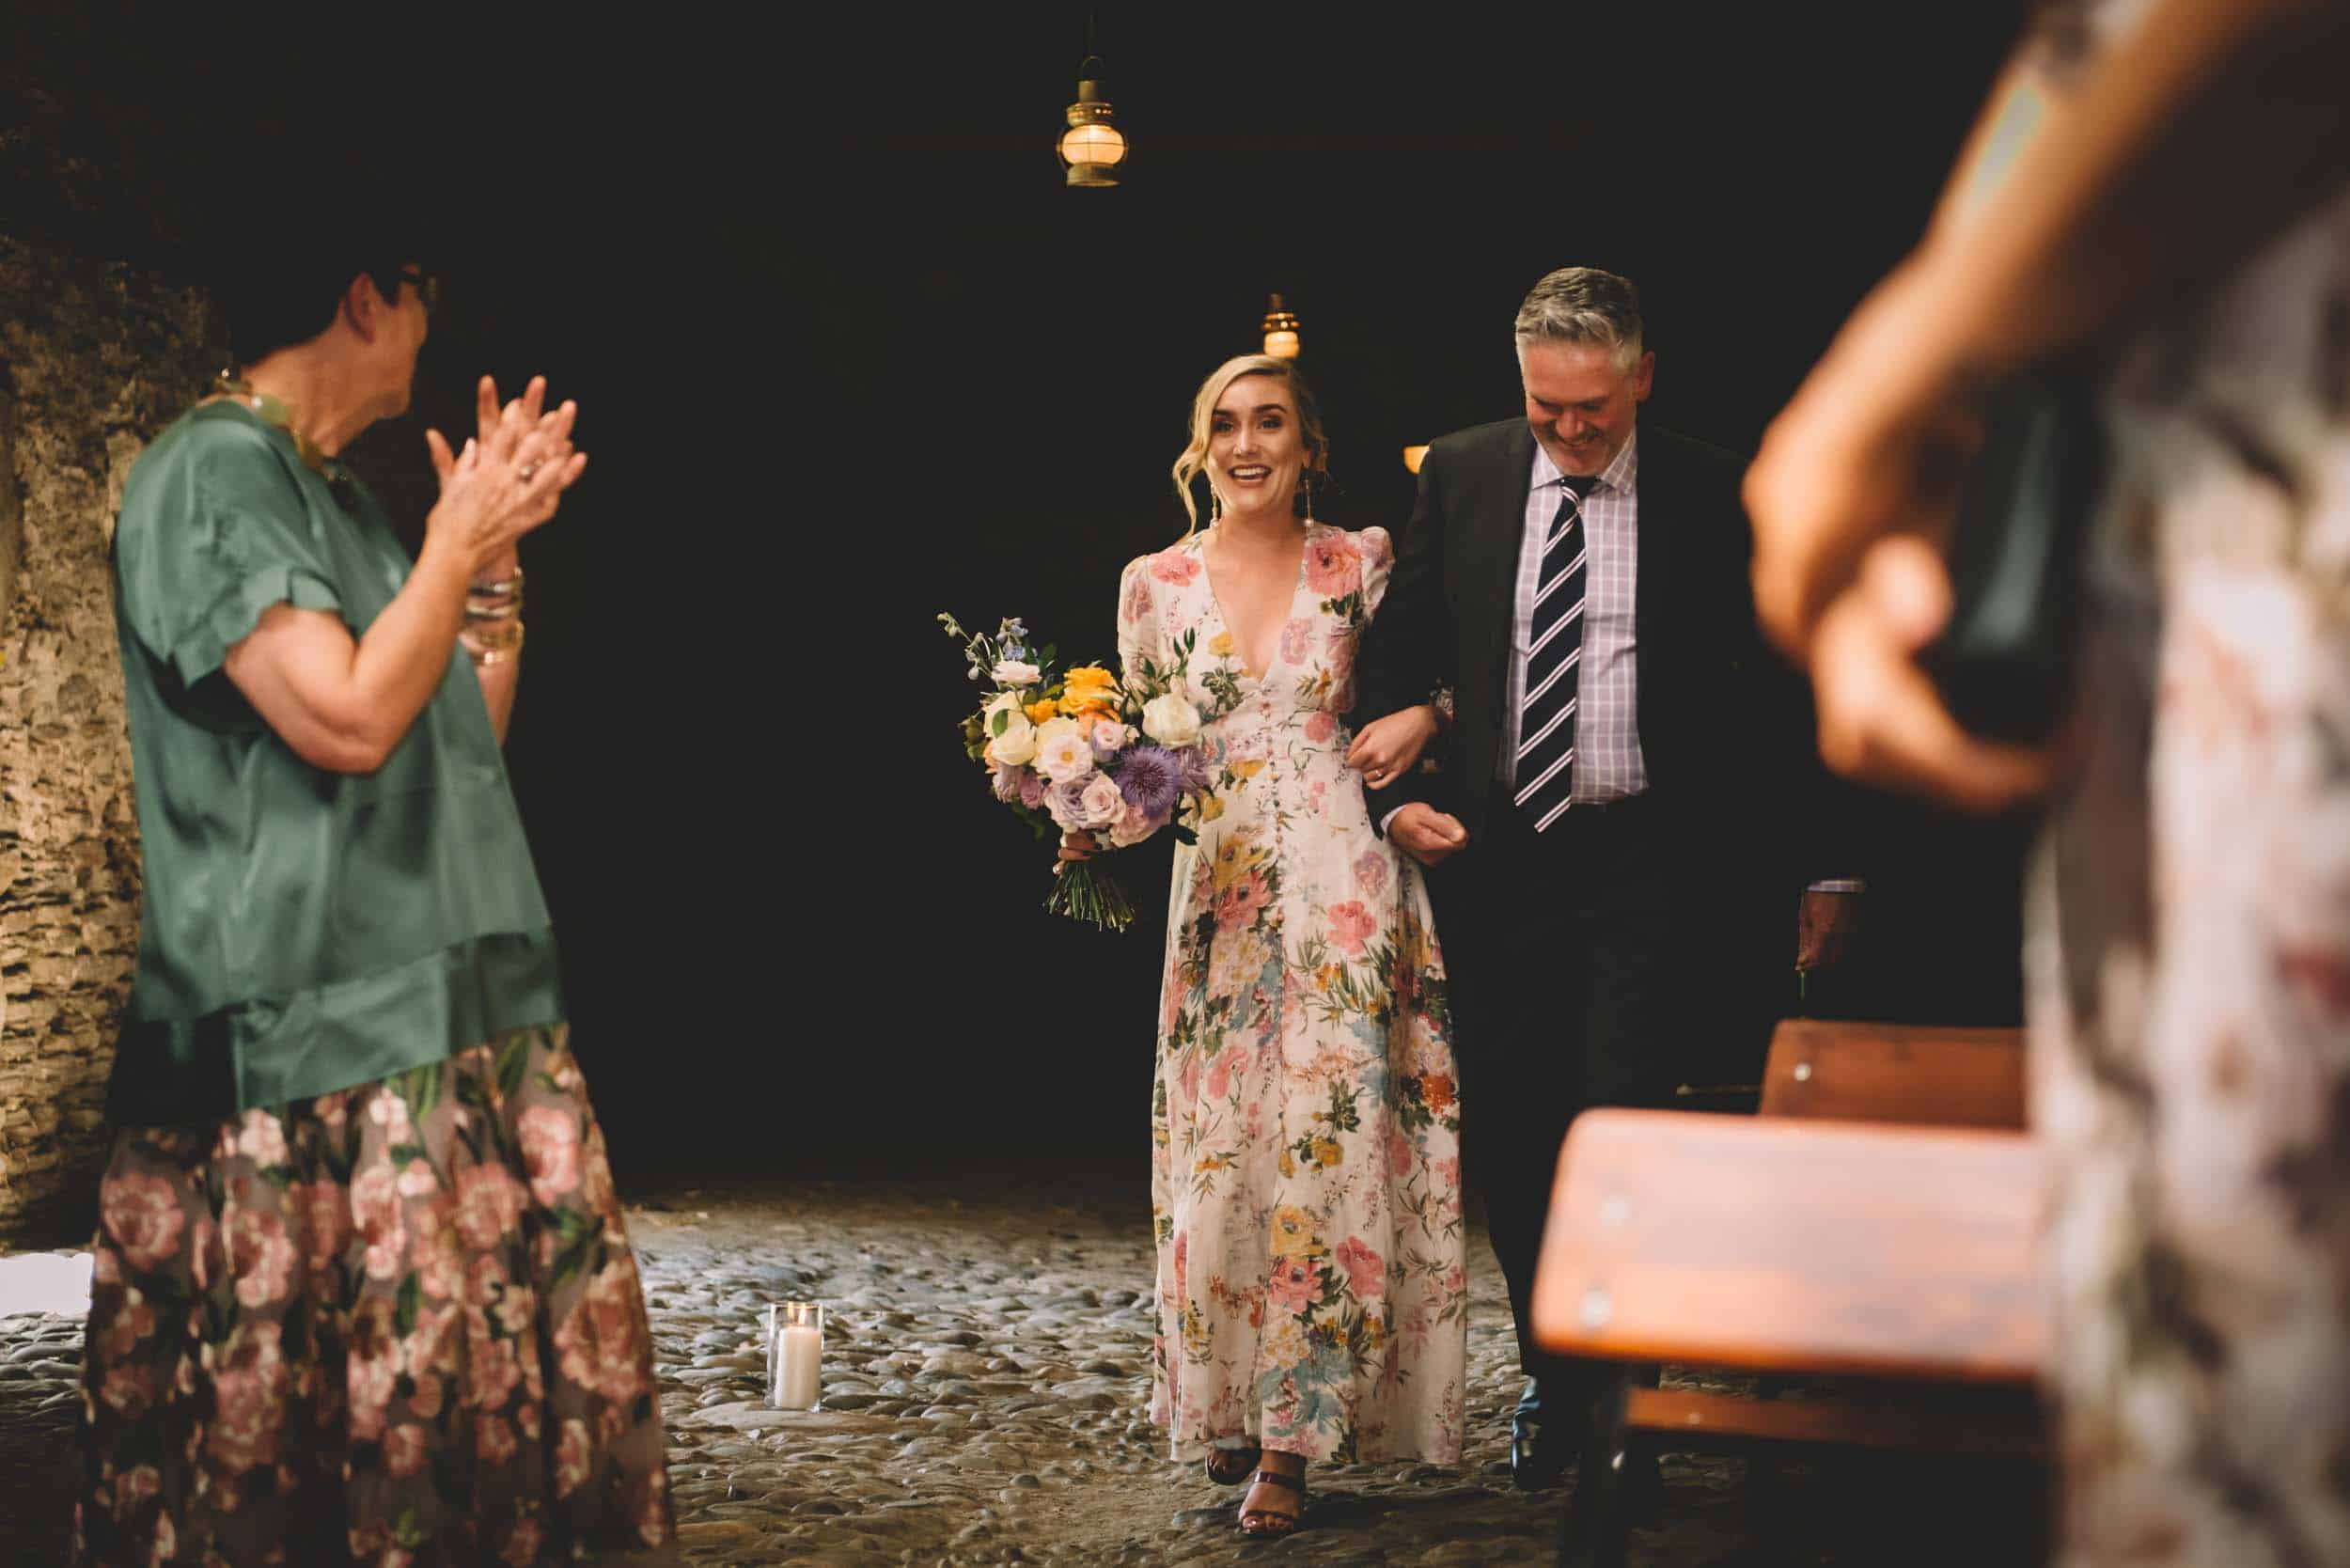 Nick & Nina's Thurlby Domain Elopement old stone stables wedding ceremony walking down the aisle